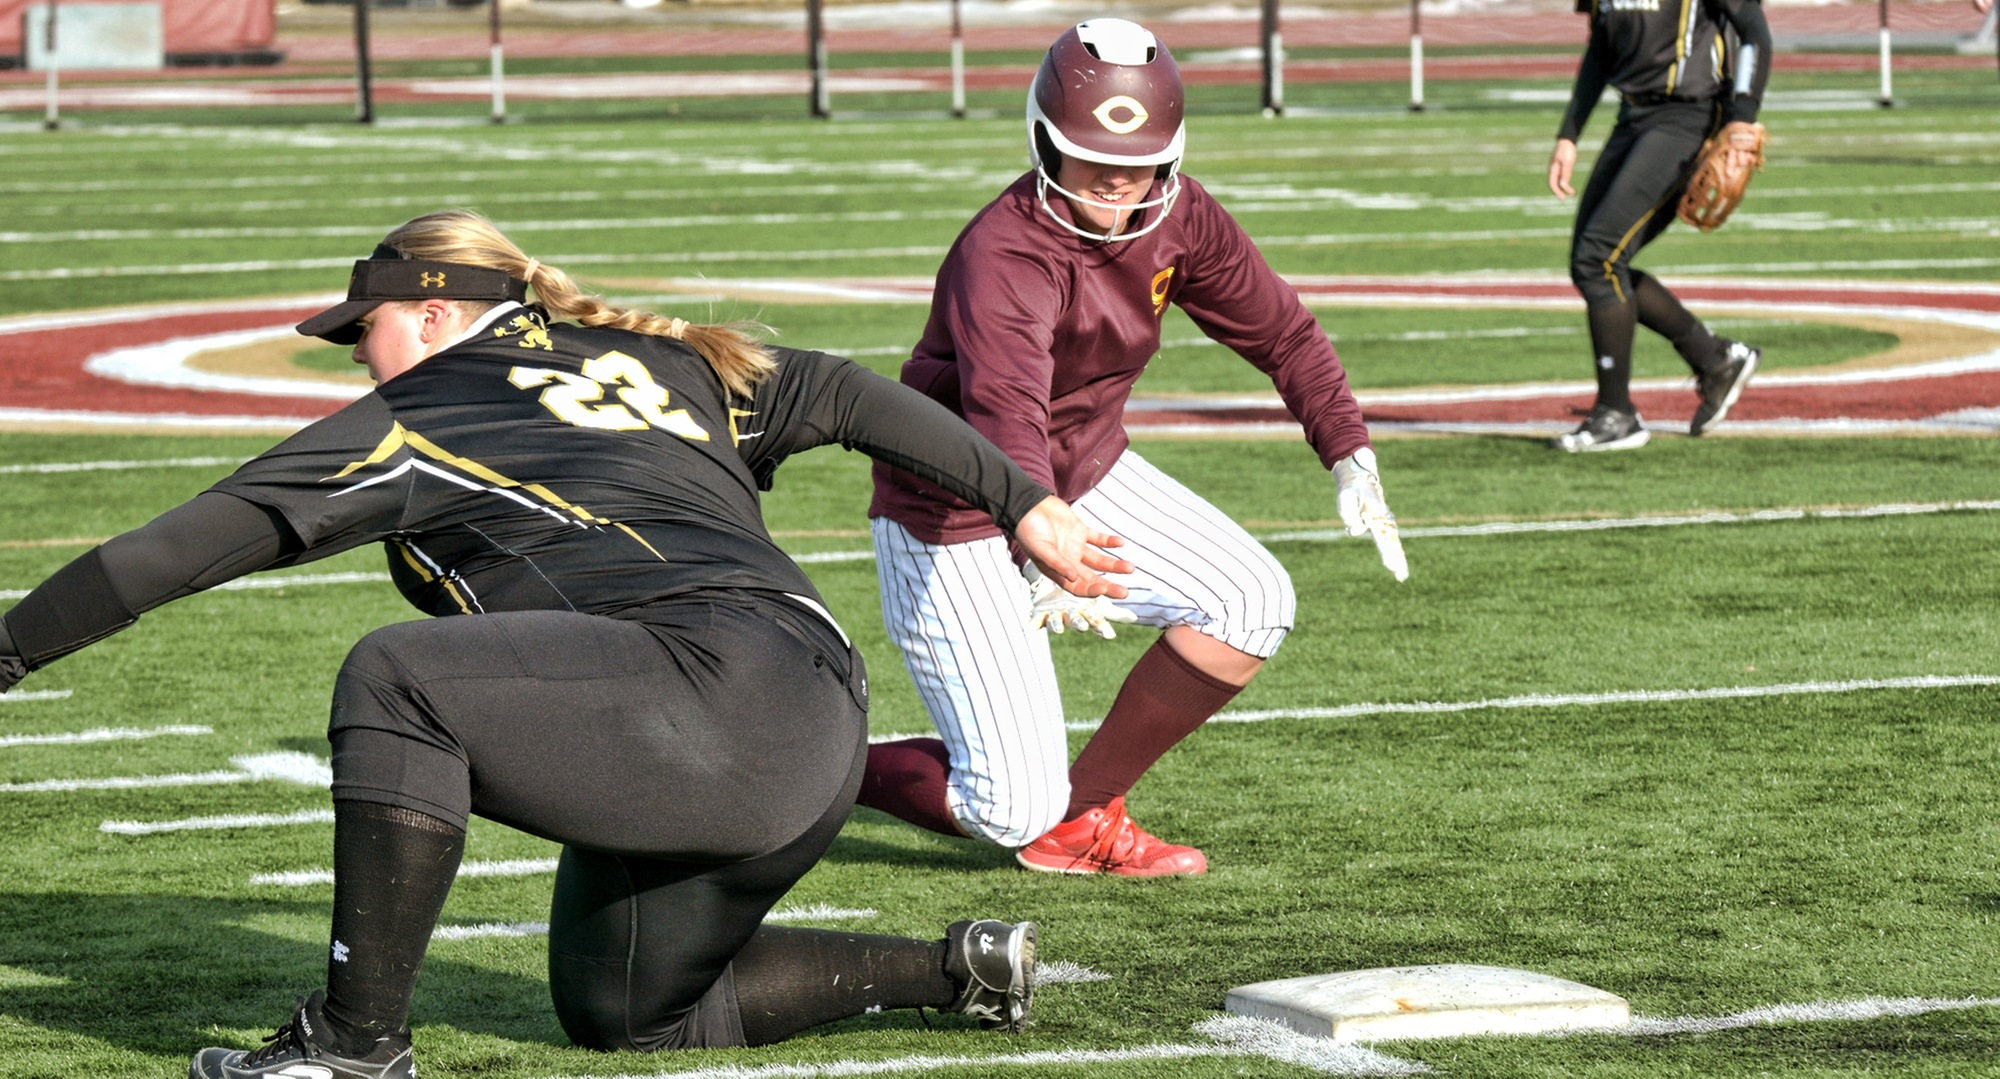 Nicole Johannes dives back into first base on an attempted pickoff play during the second game of the Cobbers' DH with St. Olaf.